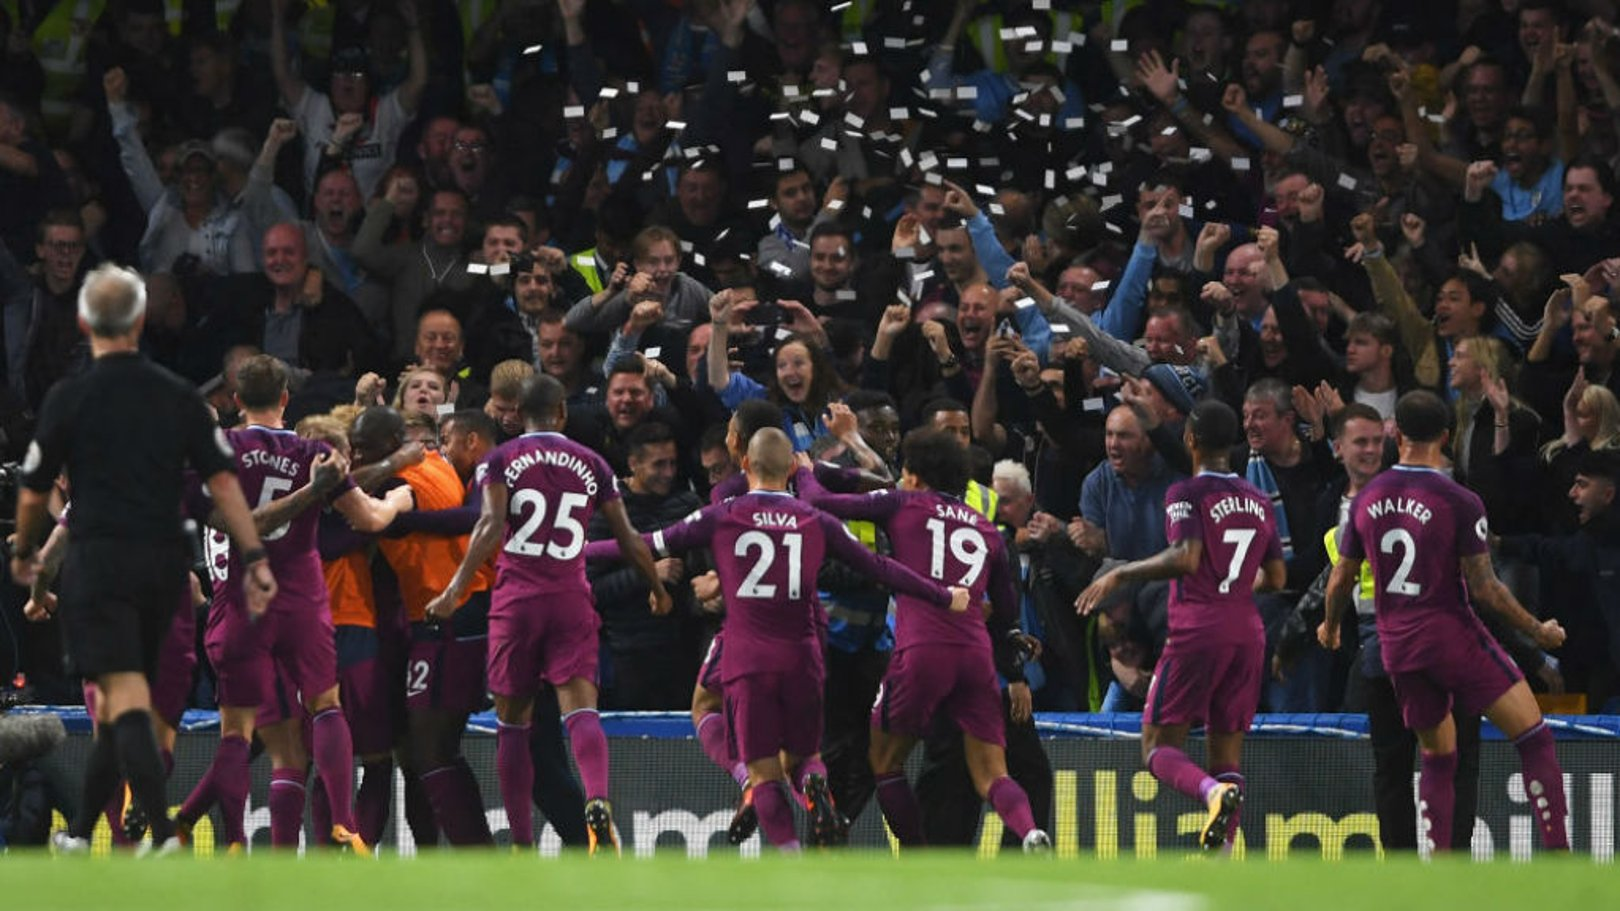 PAPER CHASE: The City players celebrate in front of the travelling fans